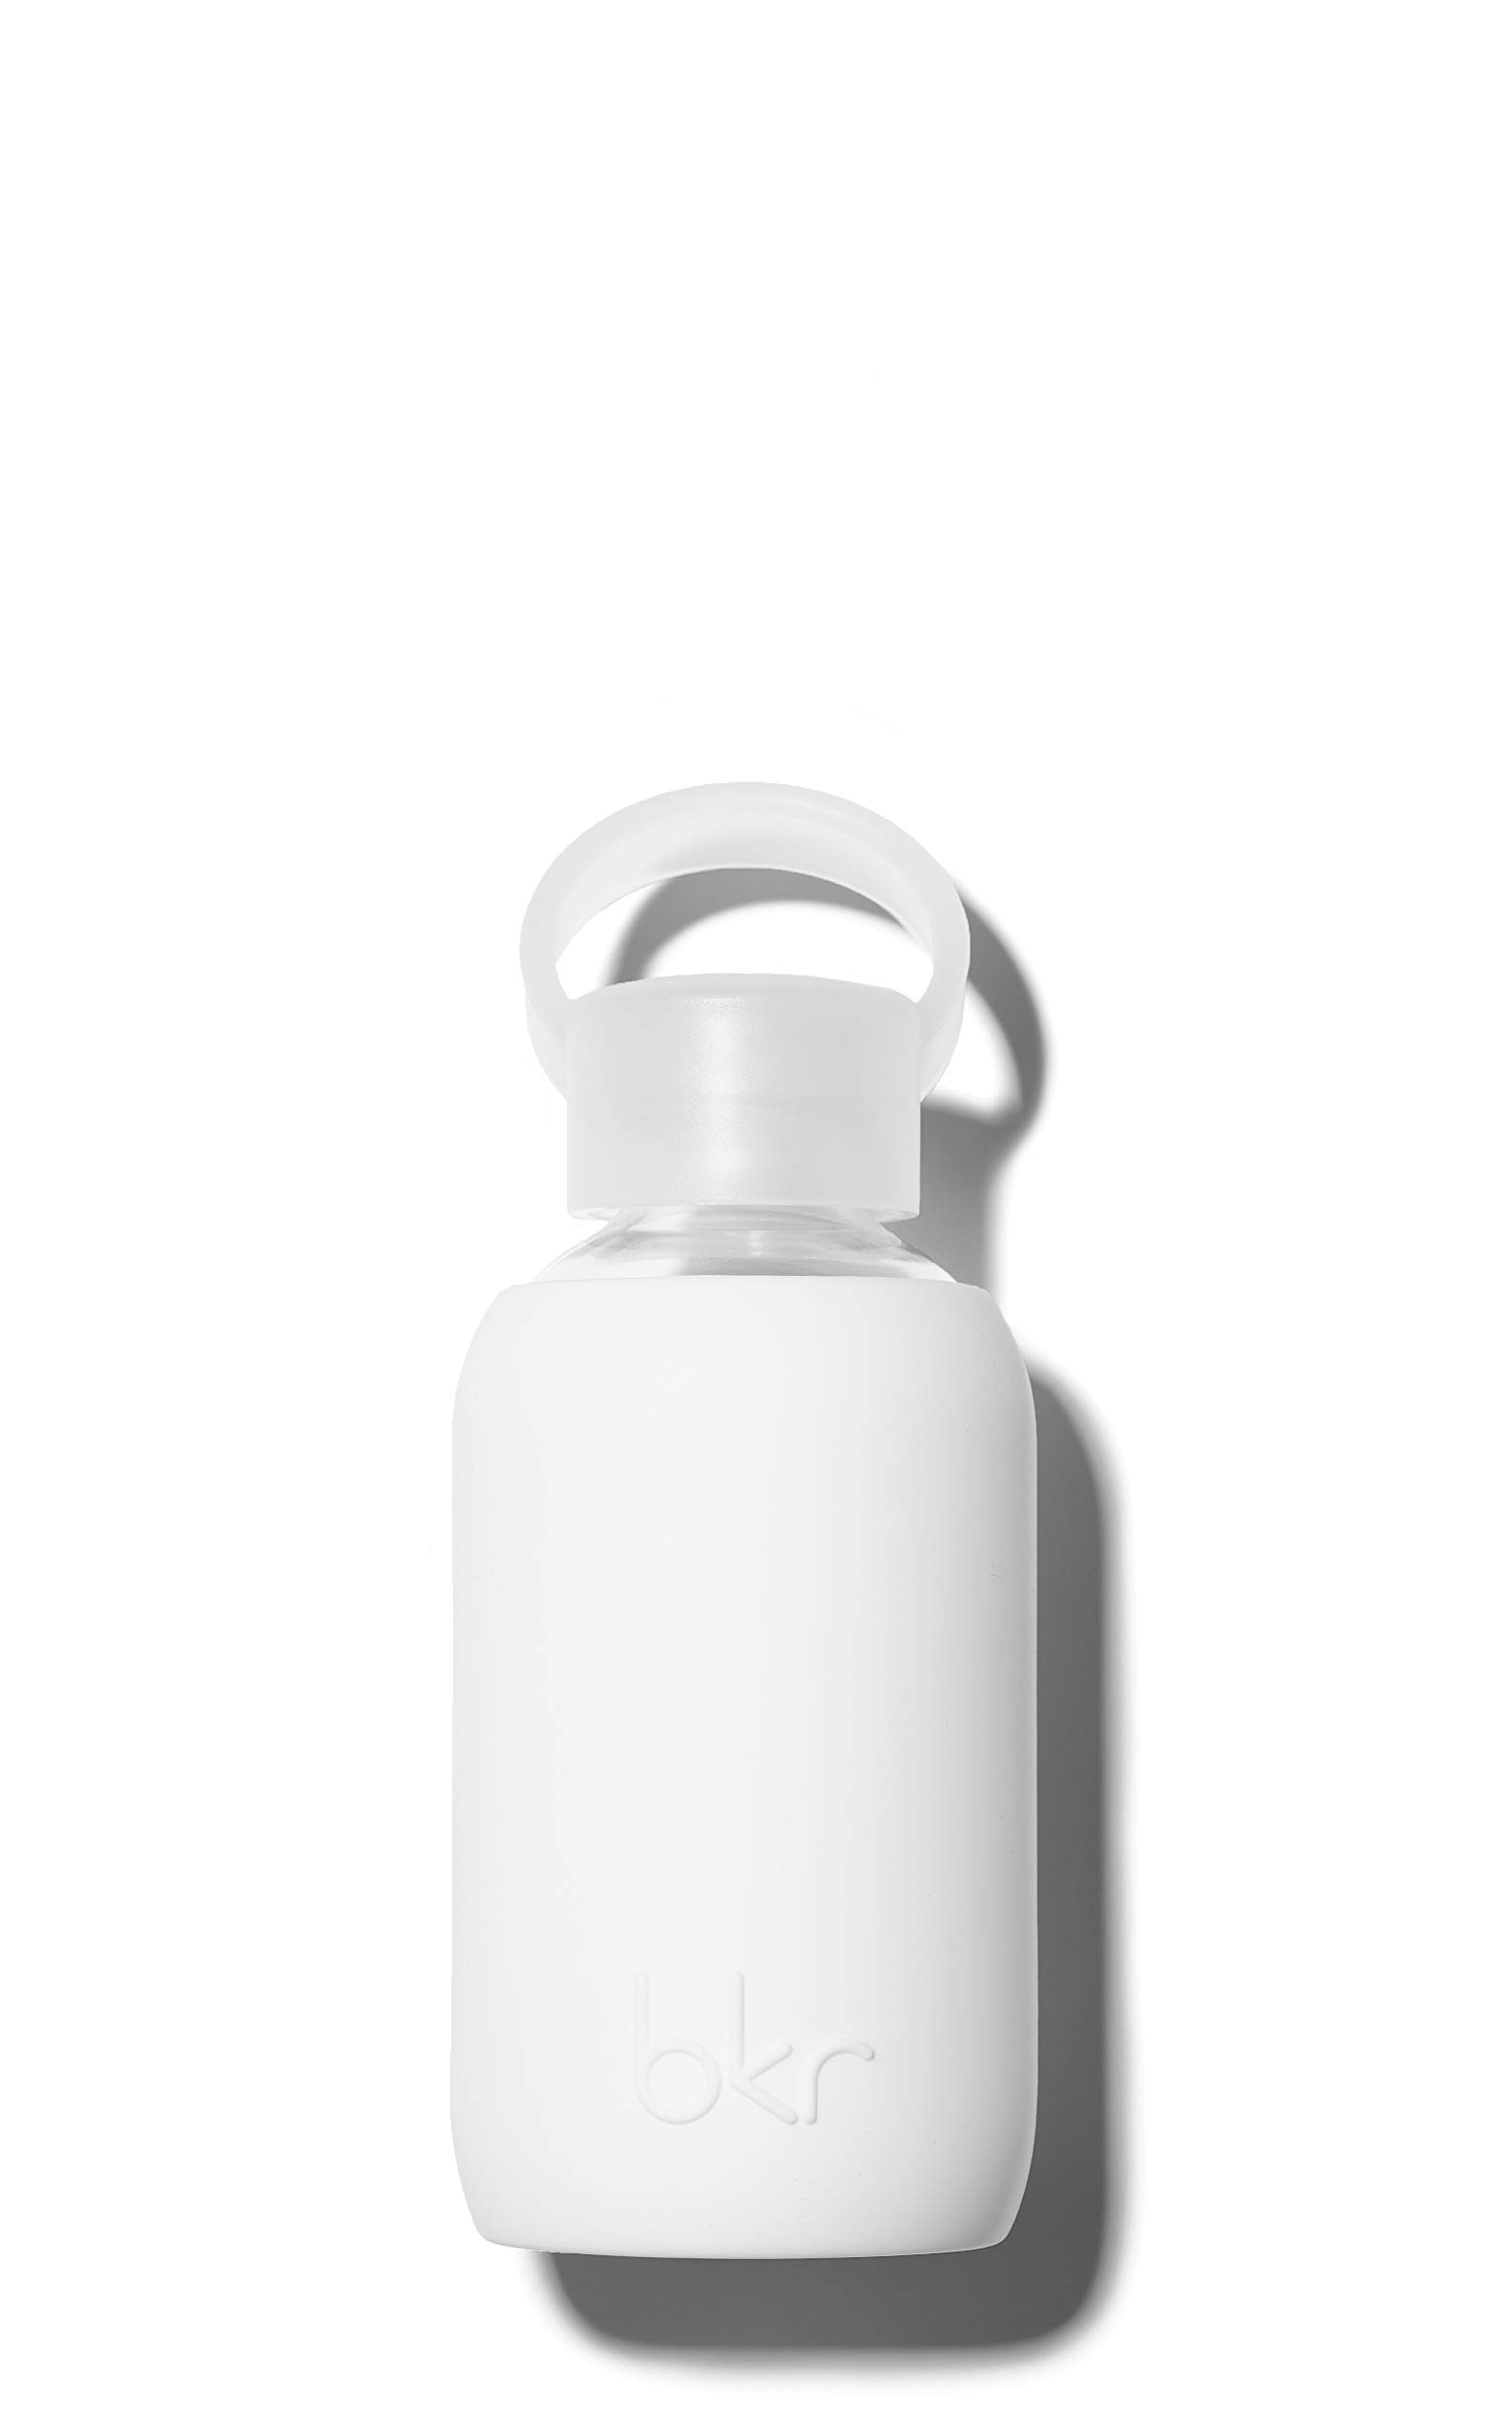 bkr Winter Glass Water Bottle with Smooth Silicone Sleeve for travel, Narrow Mouth, BPA-Free & Dishwasher Safe, Opaque White, 8 oz / 250 mL by bkr (Image #1)